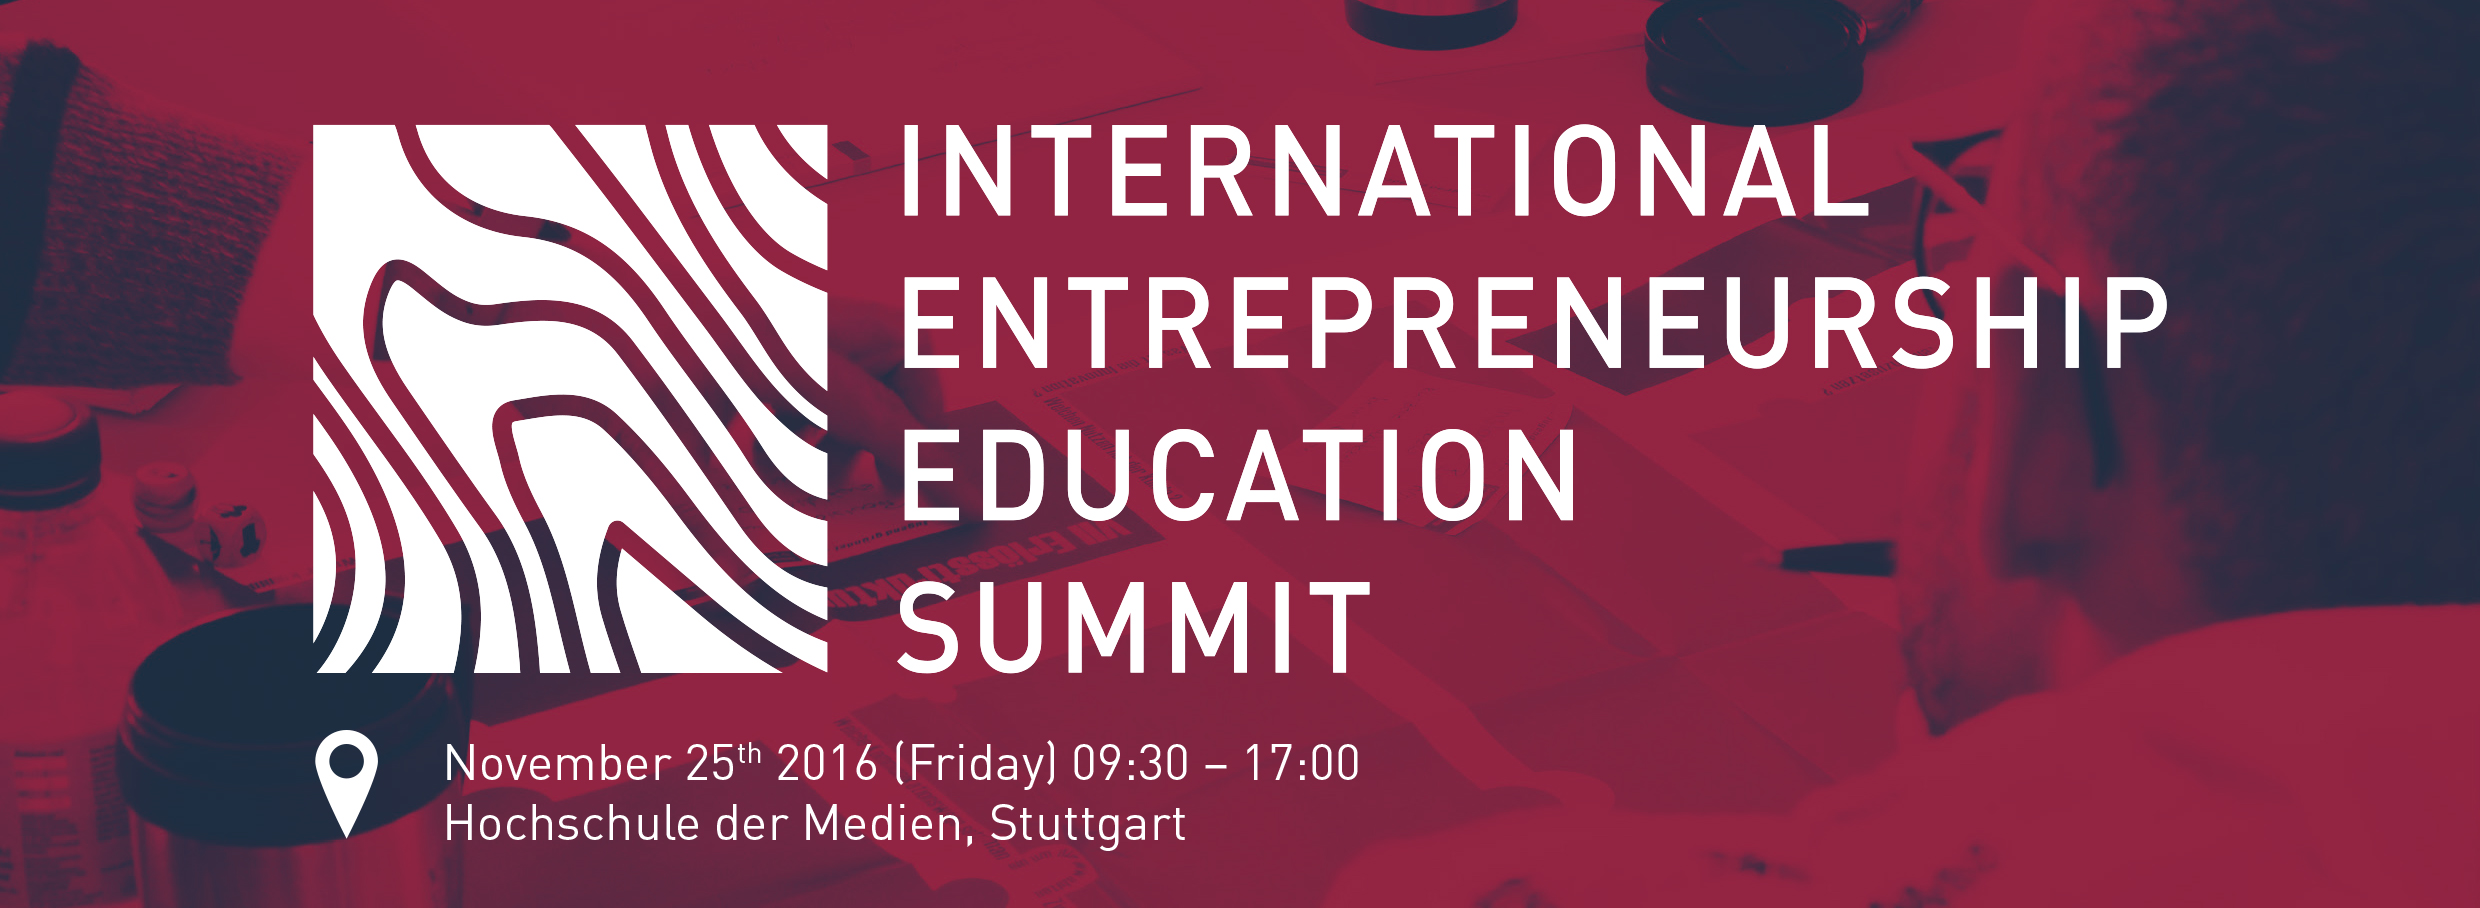 IEES - International Entrepreneurship Education Summit an der Hochschule der Medien Stuttgart